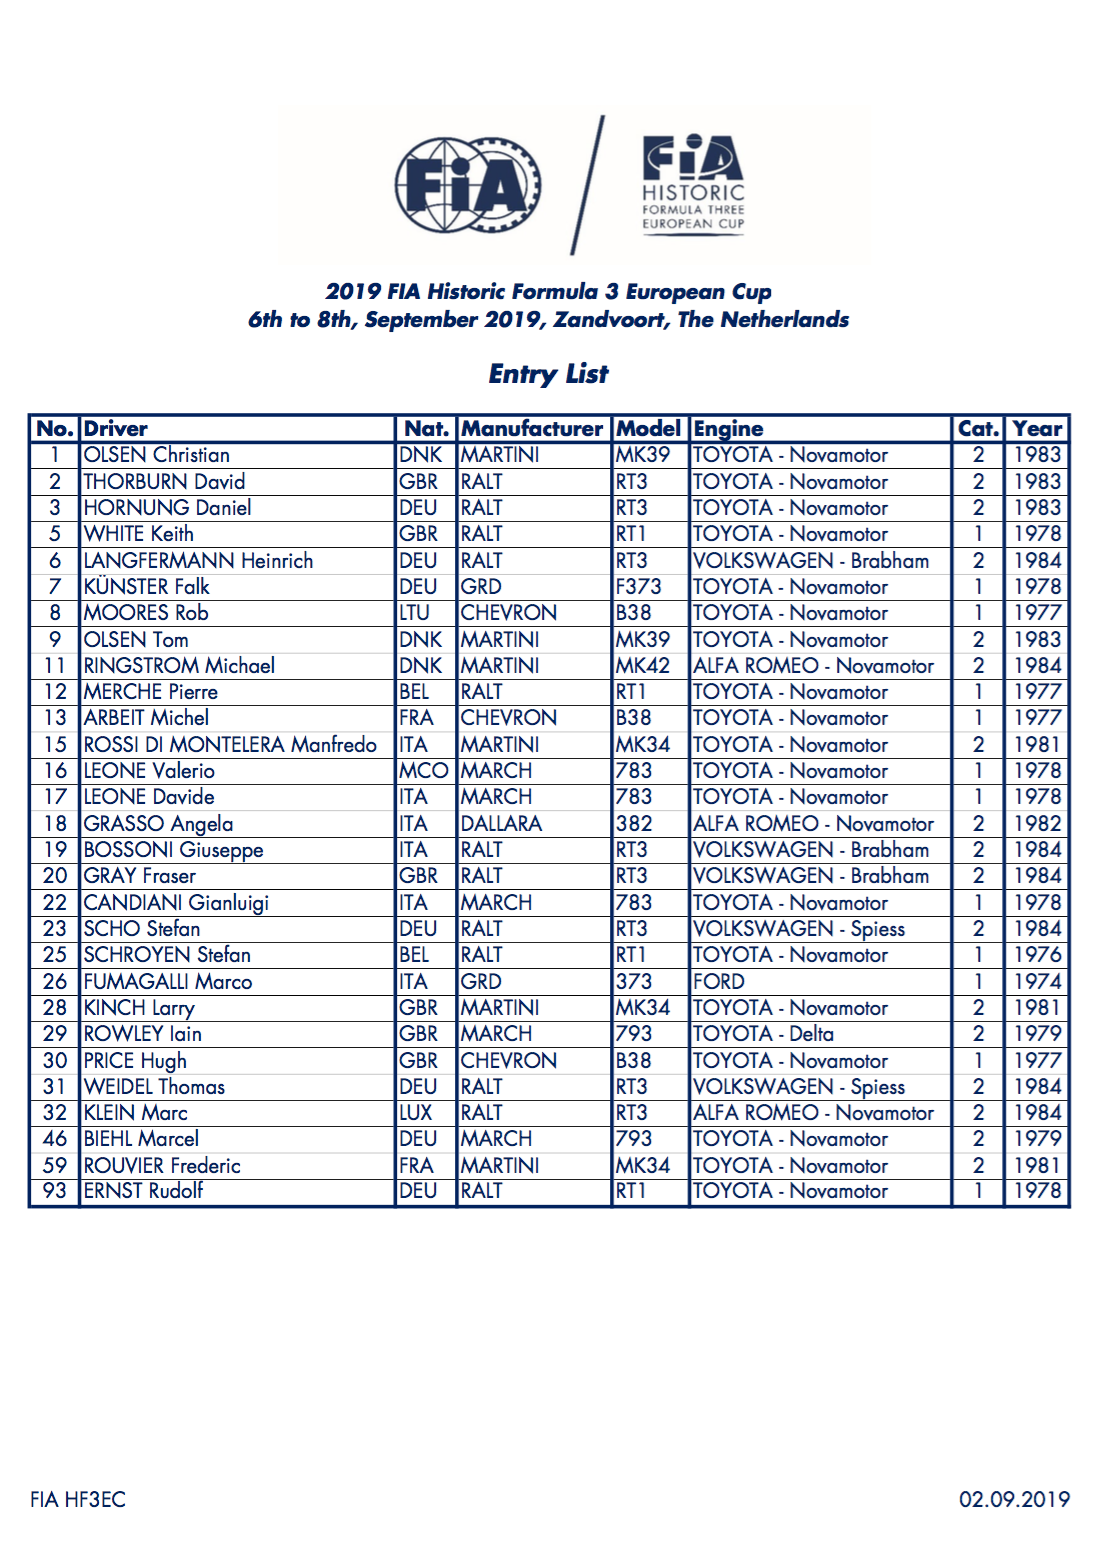 FIA Historic F3 European Cup Entry List